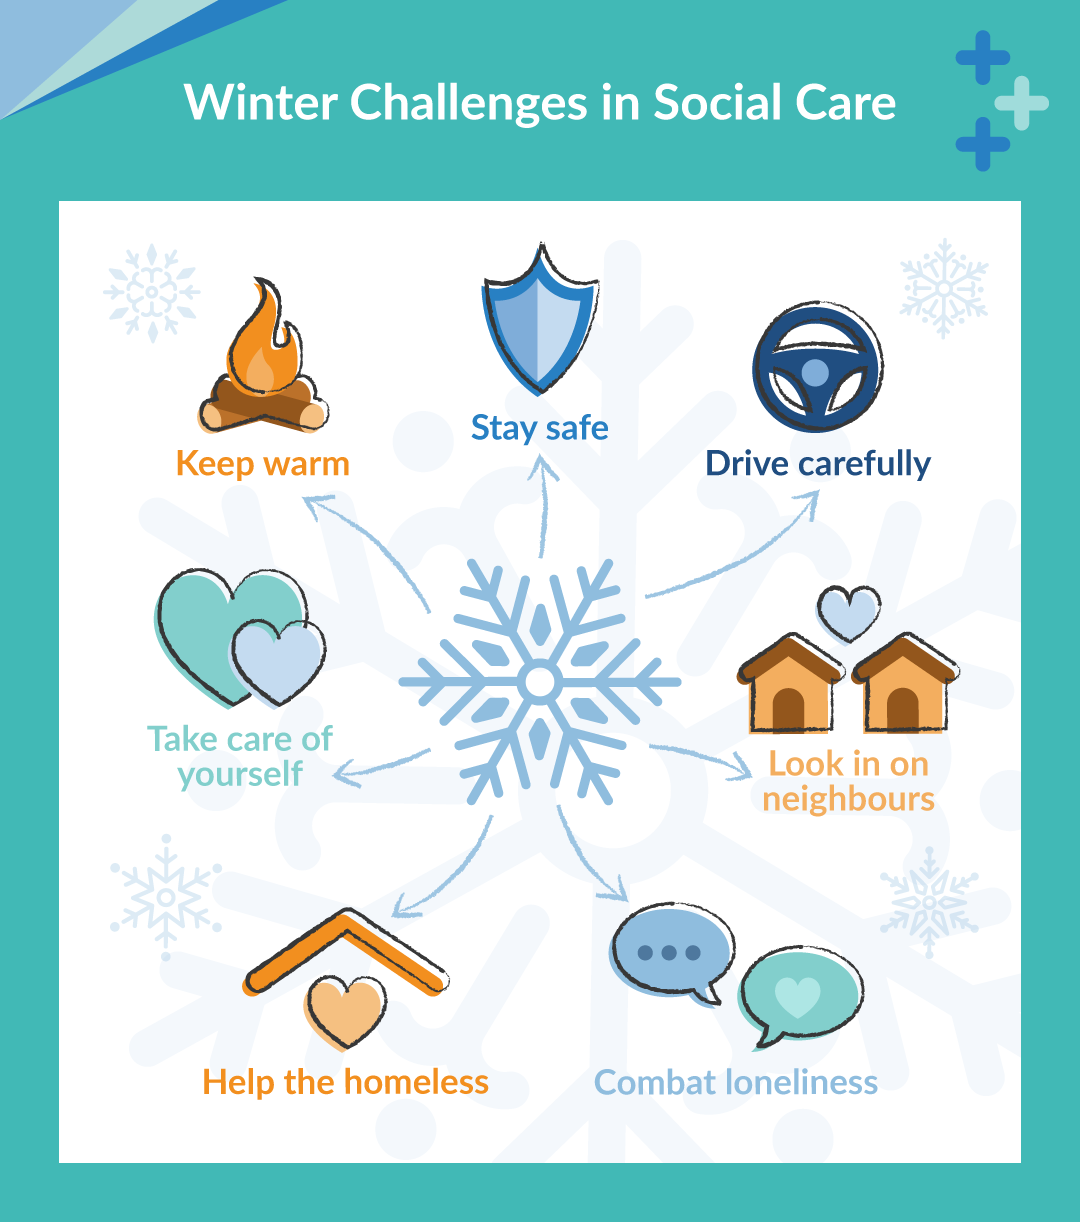 Winter Challenges in Social Care